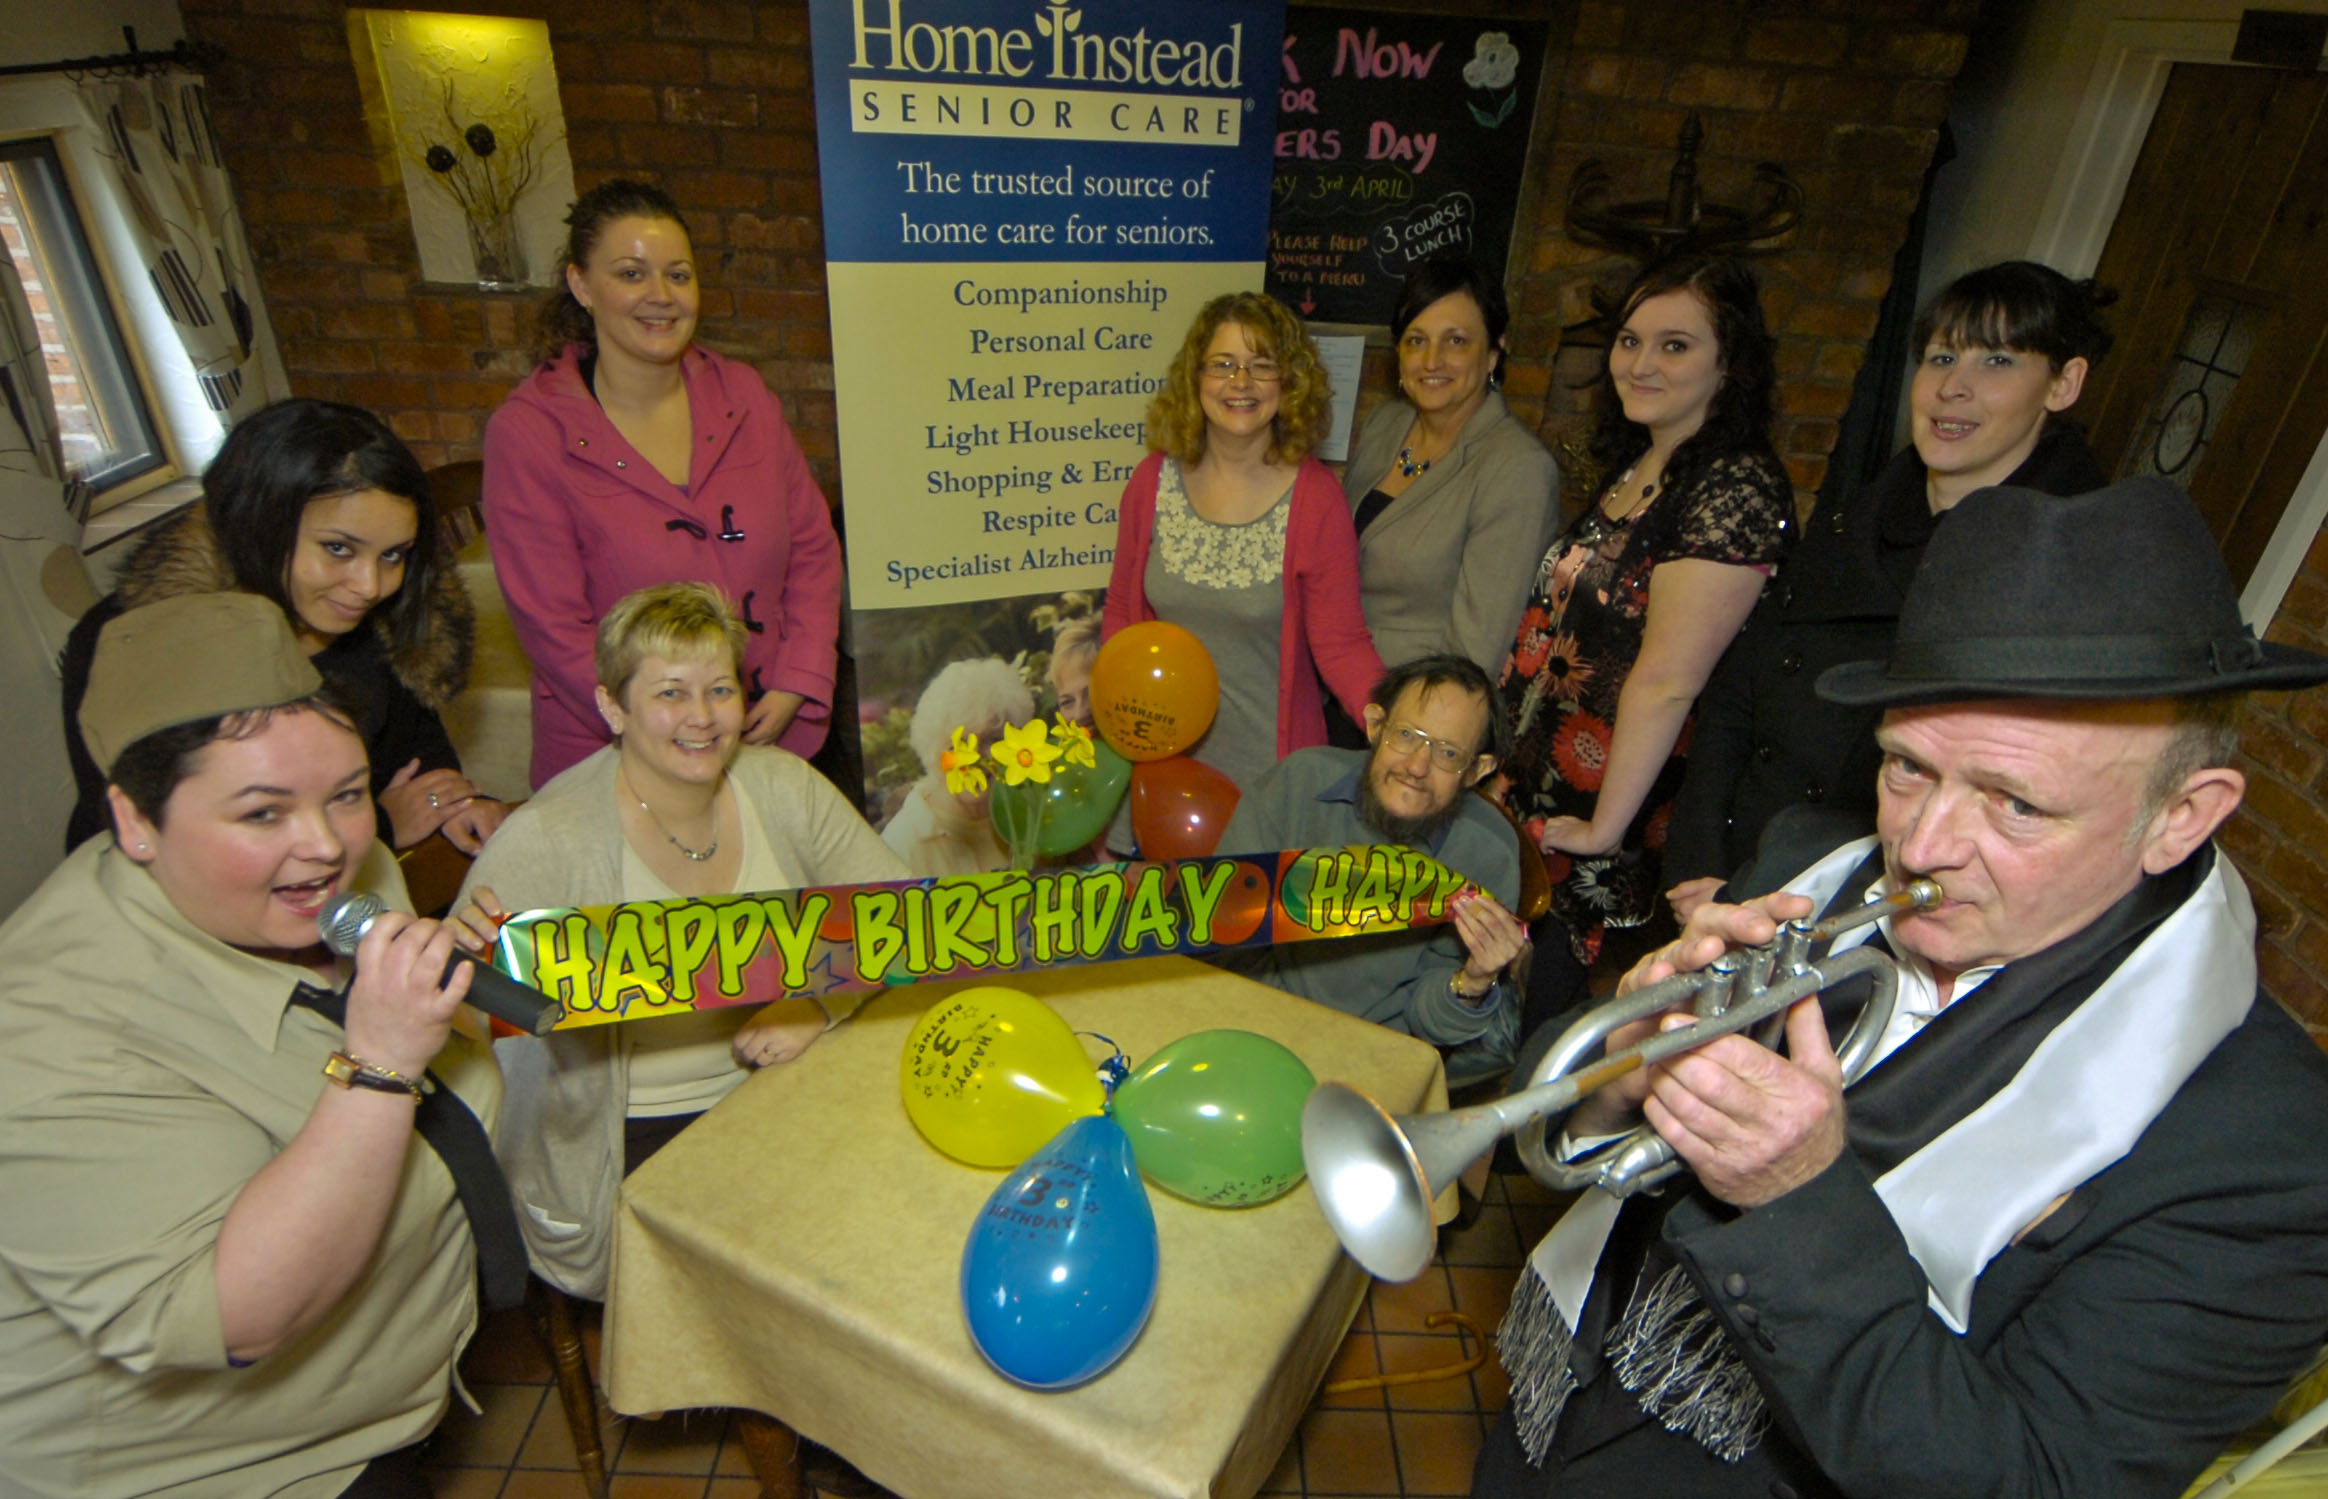 Home Instead Solihull CAREgiver Samantha Elliot and her singing group 'Something Special', celebrating the third anniversary of the franchise